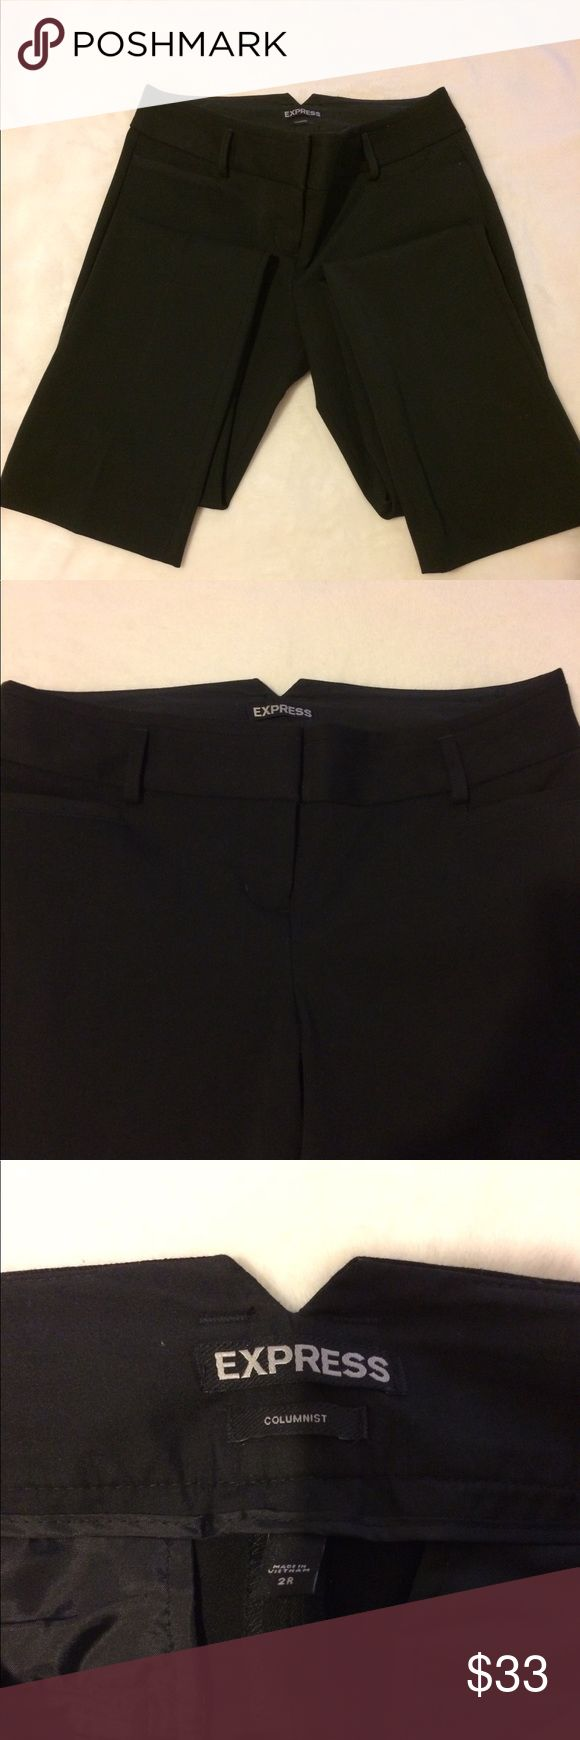 Classic Black Express Columnist Style pants Beautiful pants. 61% Polyester 34% Rayon 5% Spandex. Great condition. Only wore a few times while doing my pre-service teaching during my super skinny college days which was less than a year ago. Pants are a size 2 regular. Refer to last photo for a clearer description on pant length, etc. I love, love the look of these pants and recently bought a larger size. For some reason, Express pants never fail to give you a great feel & look! Express Pants…